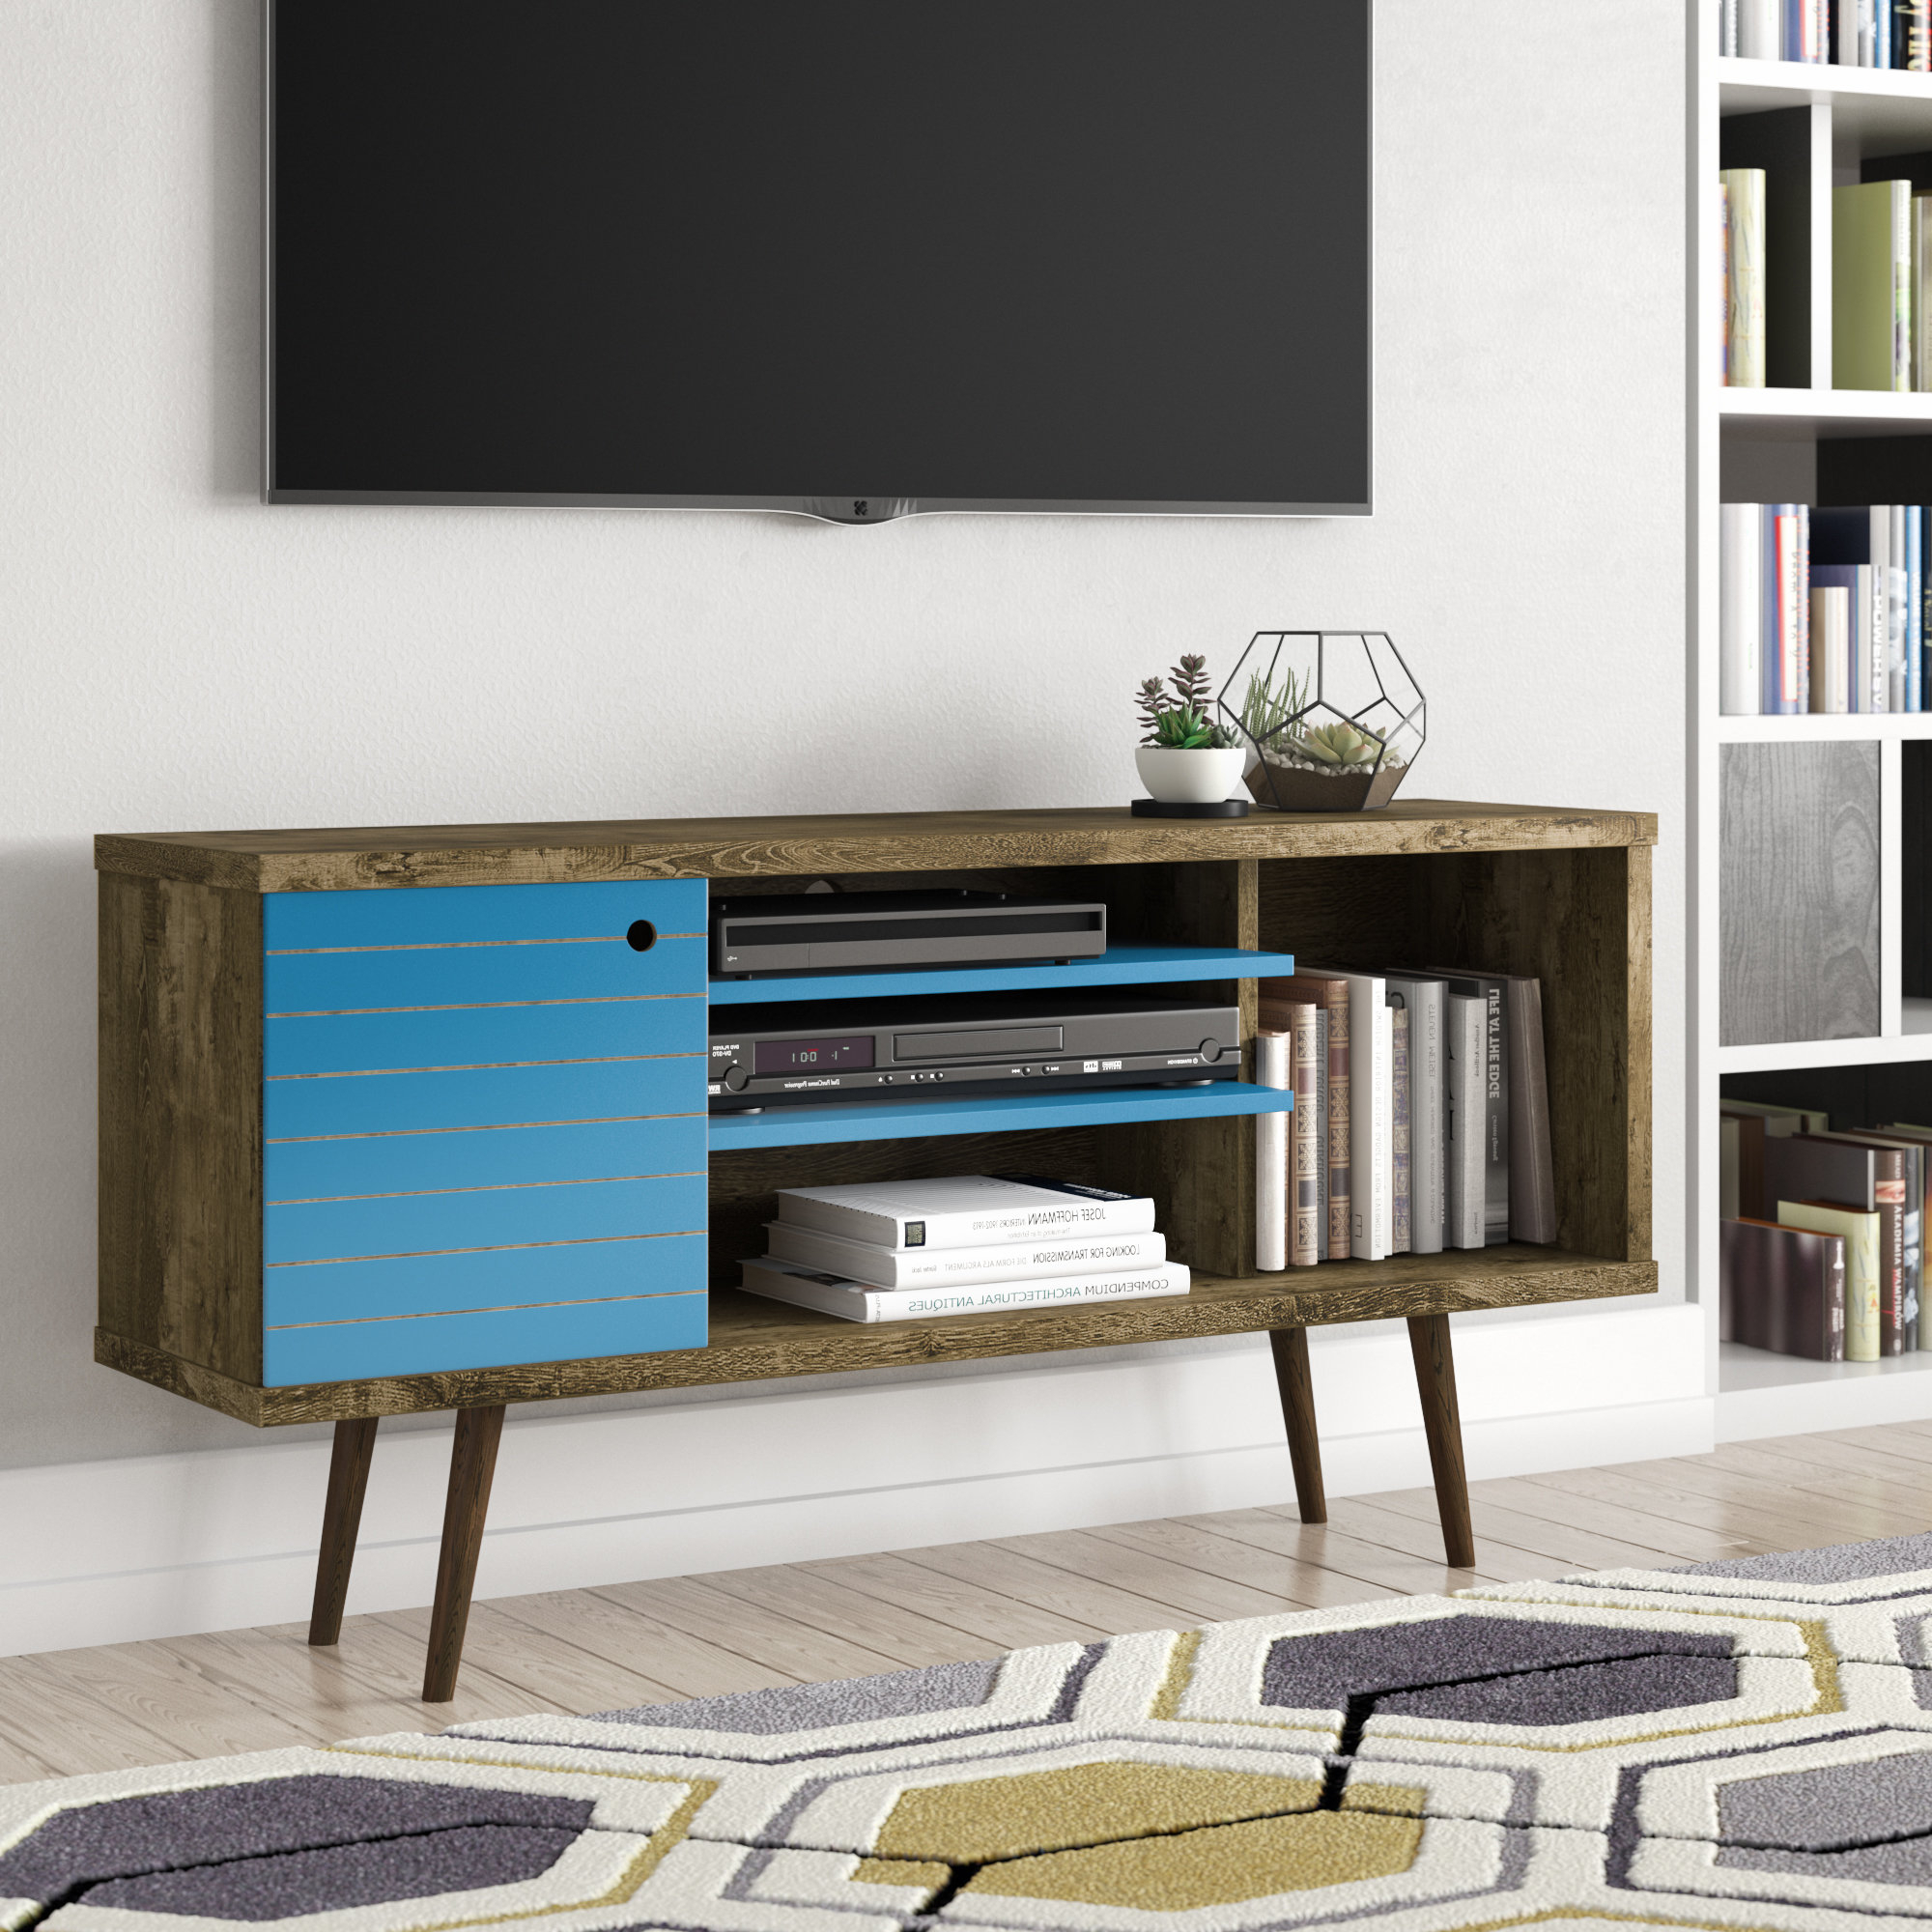 Blue Tv Stands You'll Love | Wayfair For Century Sky 60 Inch Tv Stands (View 15 of 20)